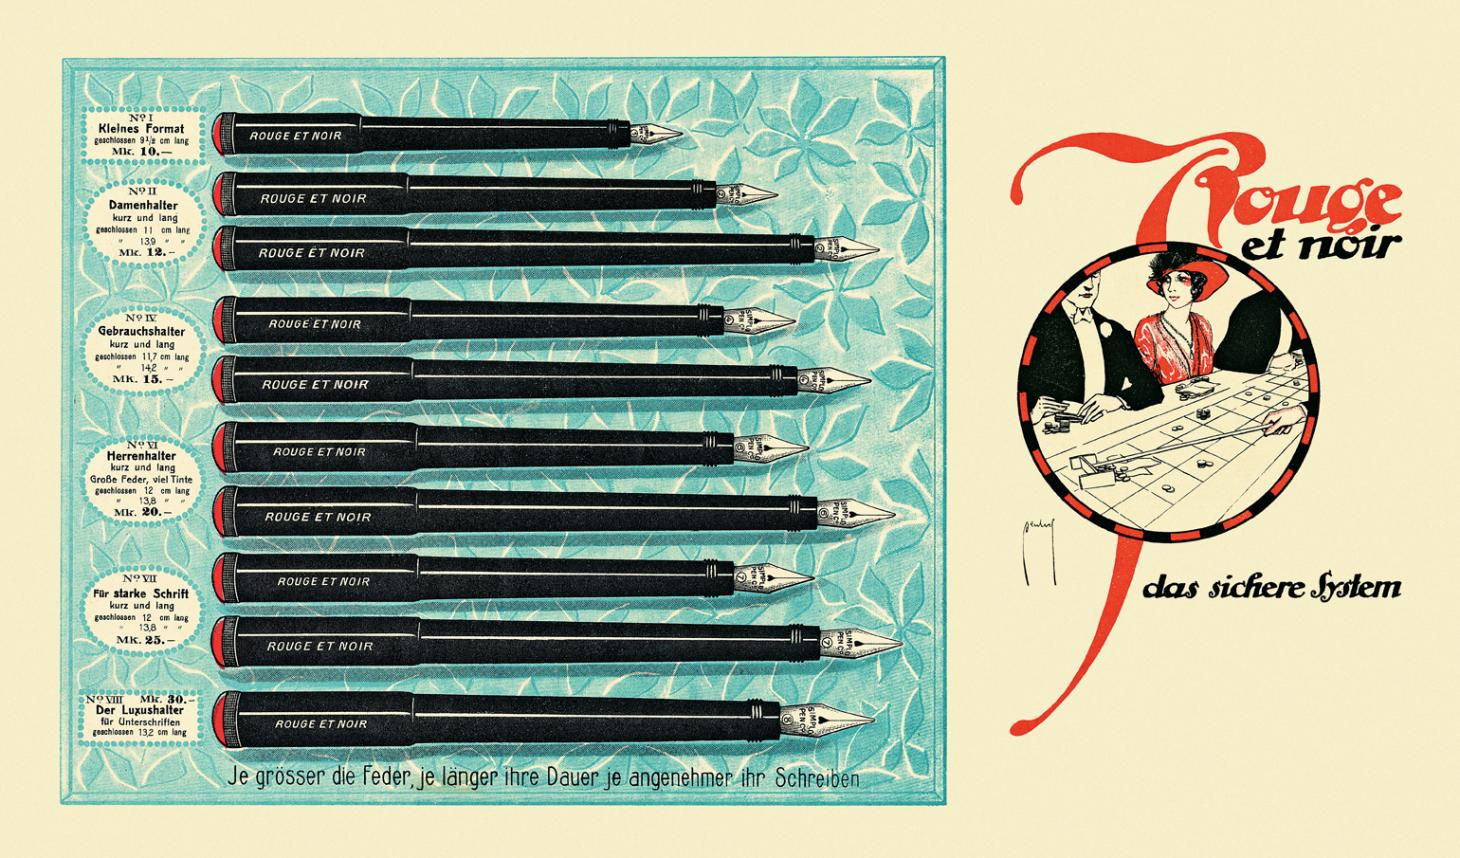 Poster from the Montblanc archive